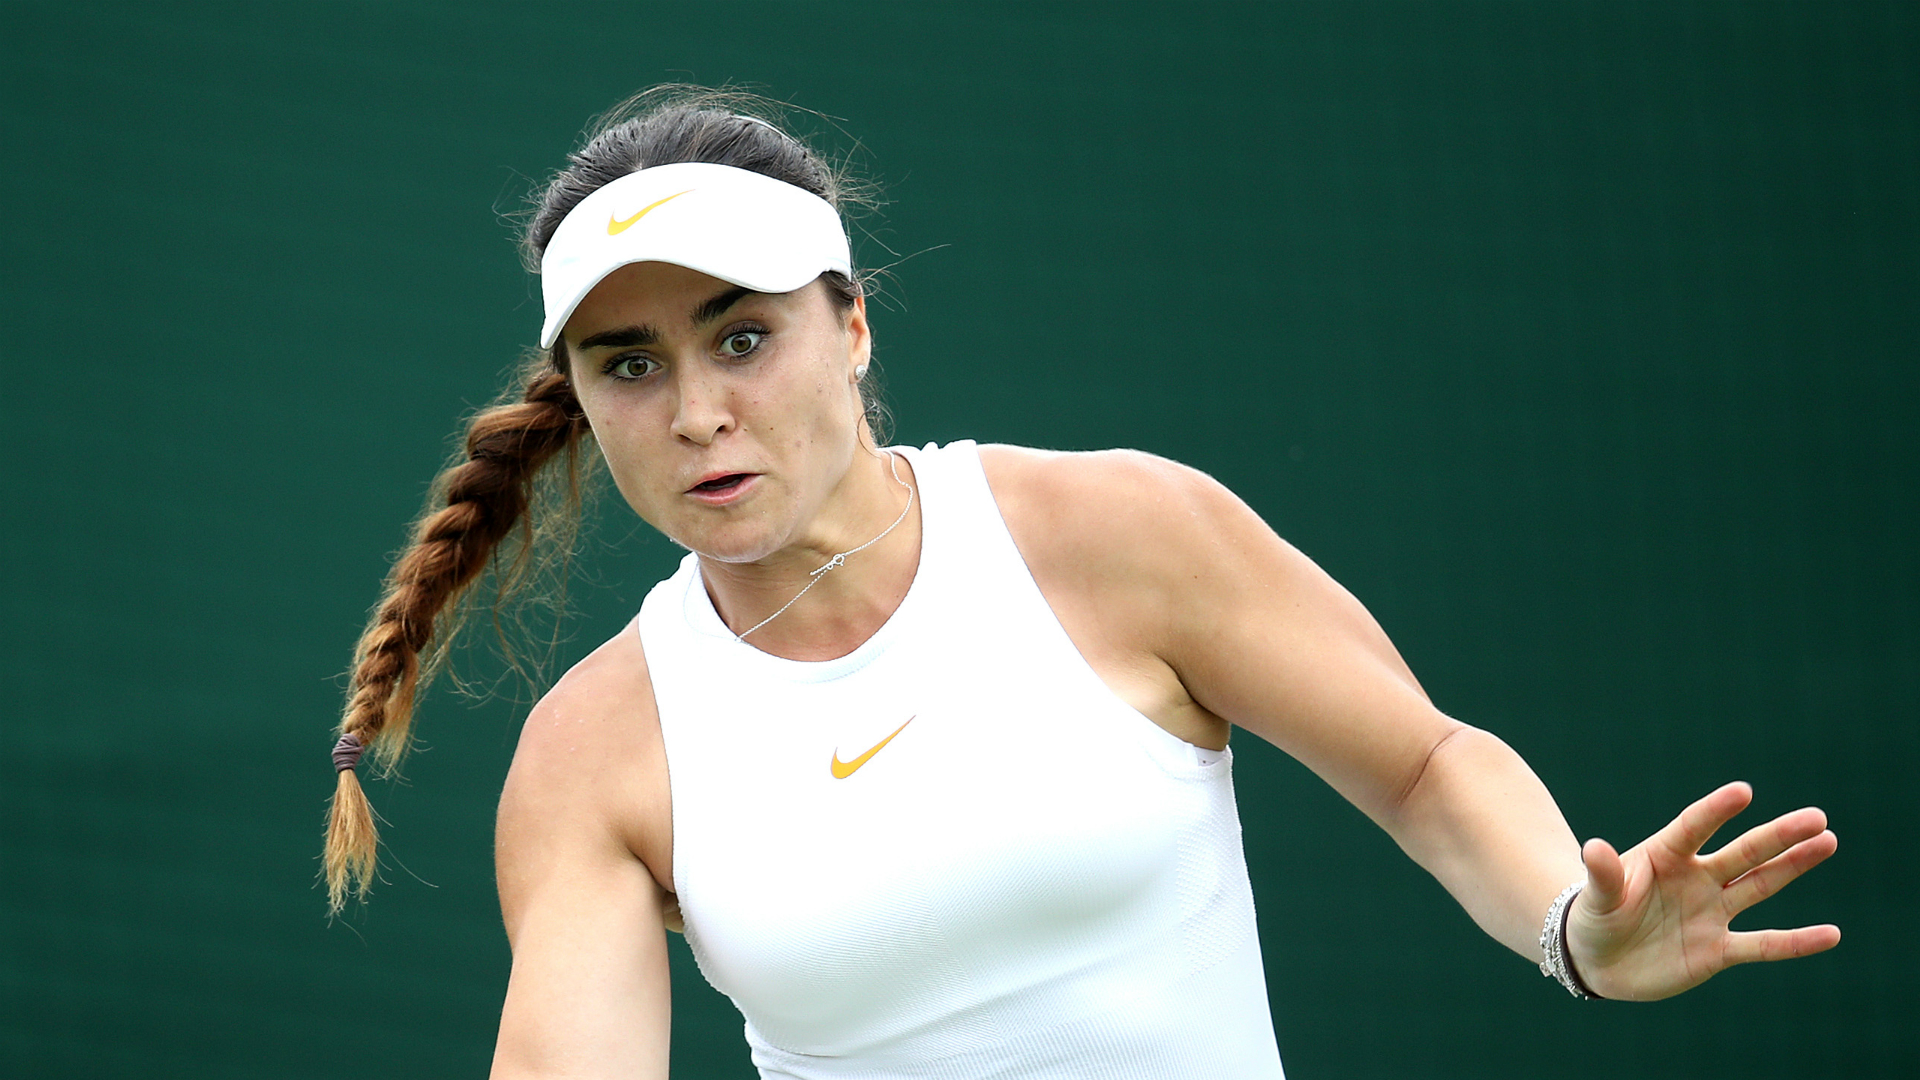 Chloe Paquet turned the tables on fellow French player Carolina Garcia with a shock win in Latvia on Wednesday at the Baltic Open.